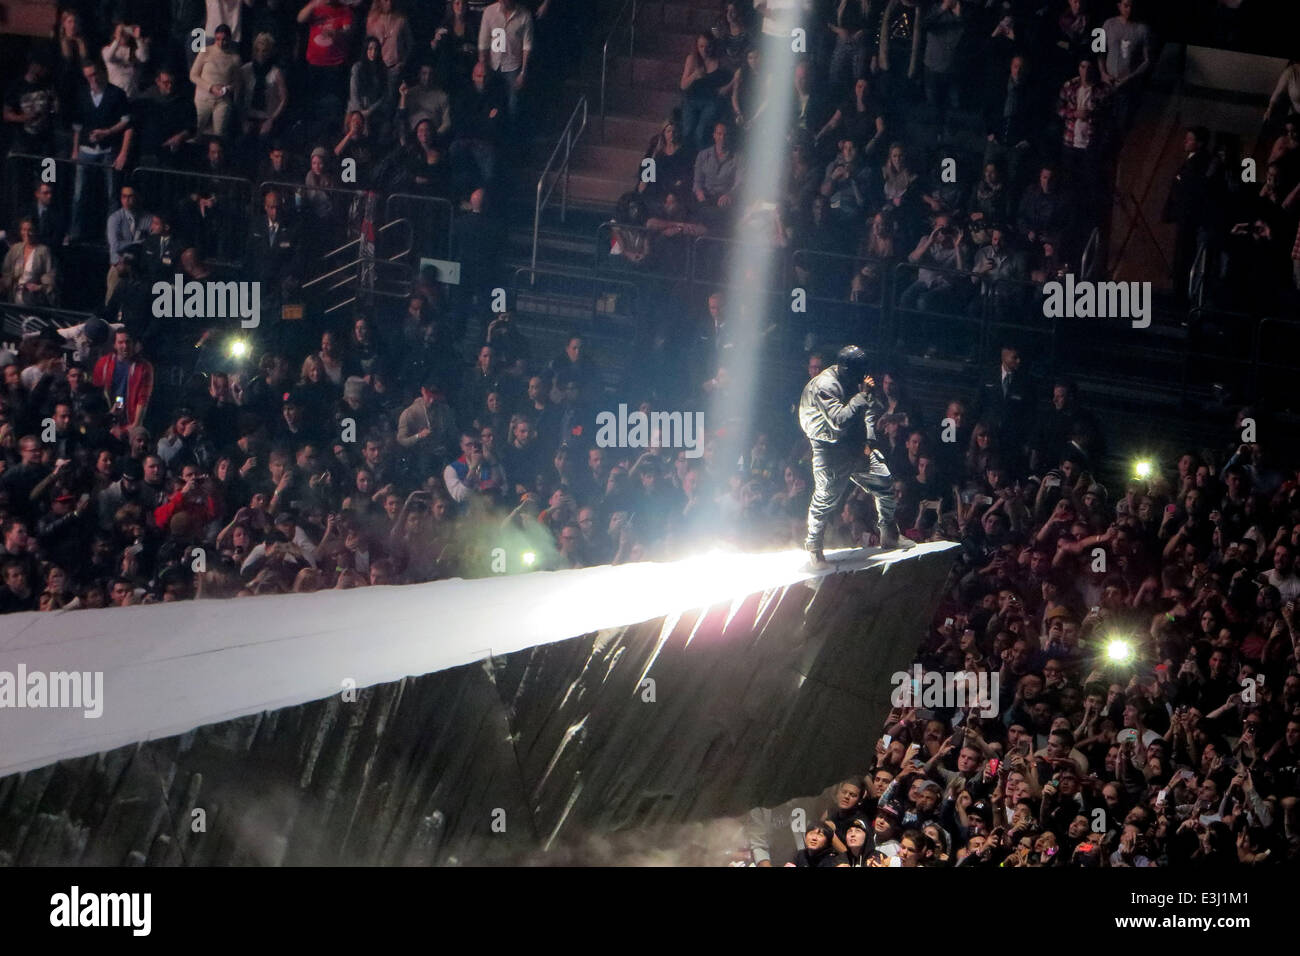 Kanye West Performs To A Sold Out Crowd At Madison Square Garden As Part Of  His U0027Yeezusu0027 Tour. The Eccentric Rapper Performed The Entire Concert  Wearing A ... Ideas